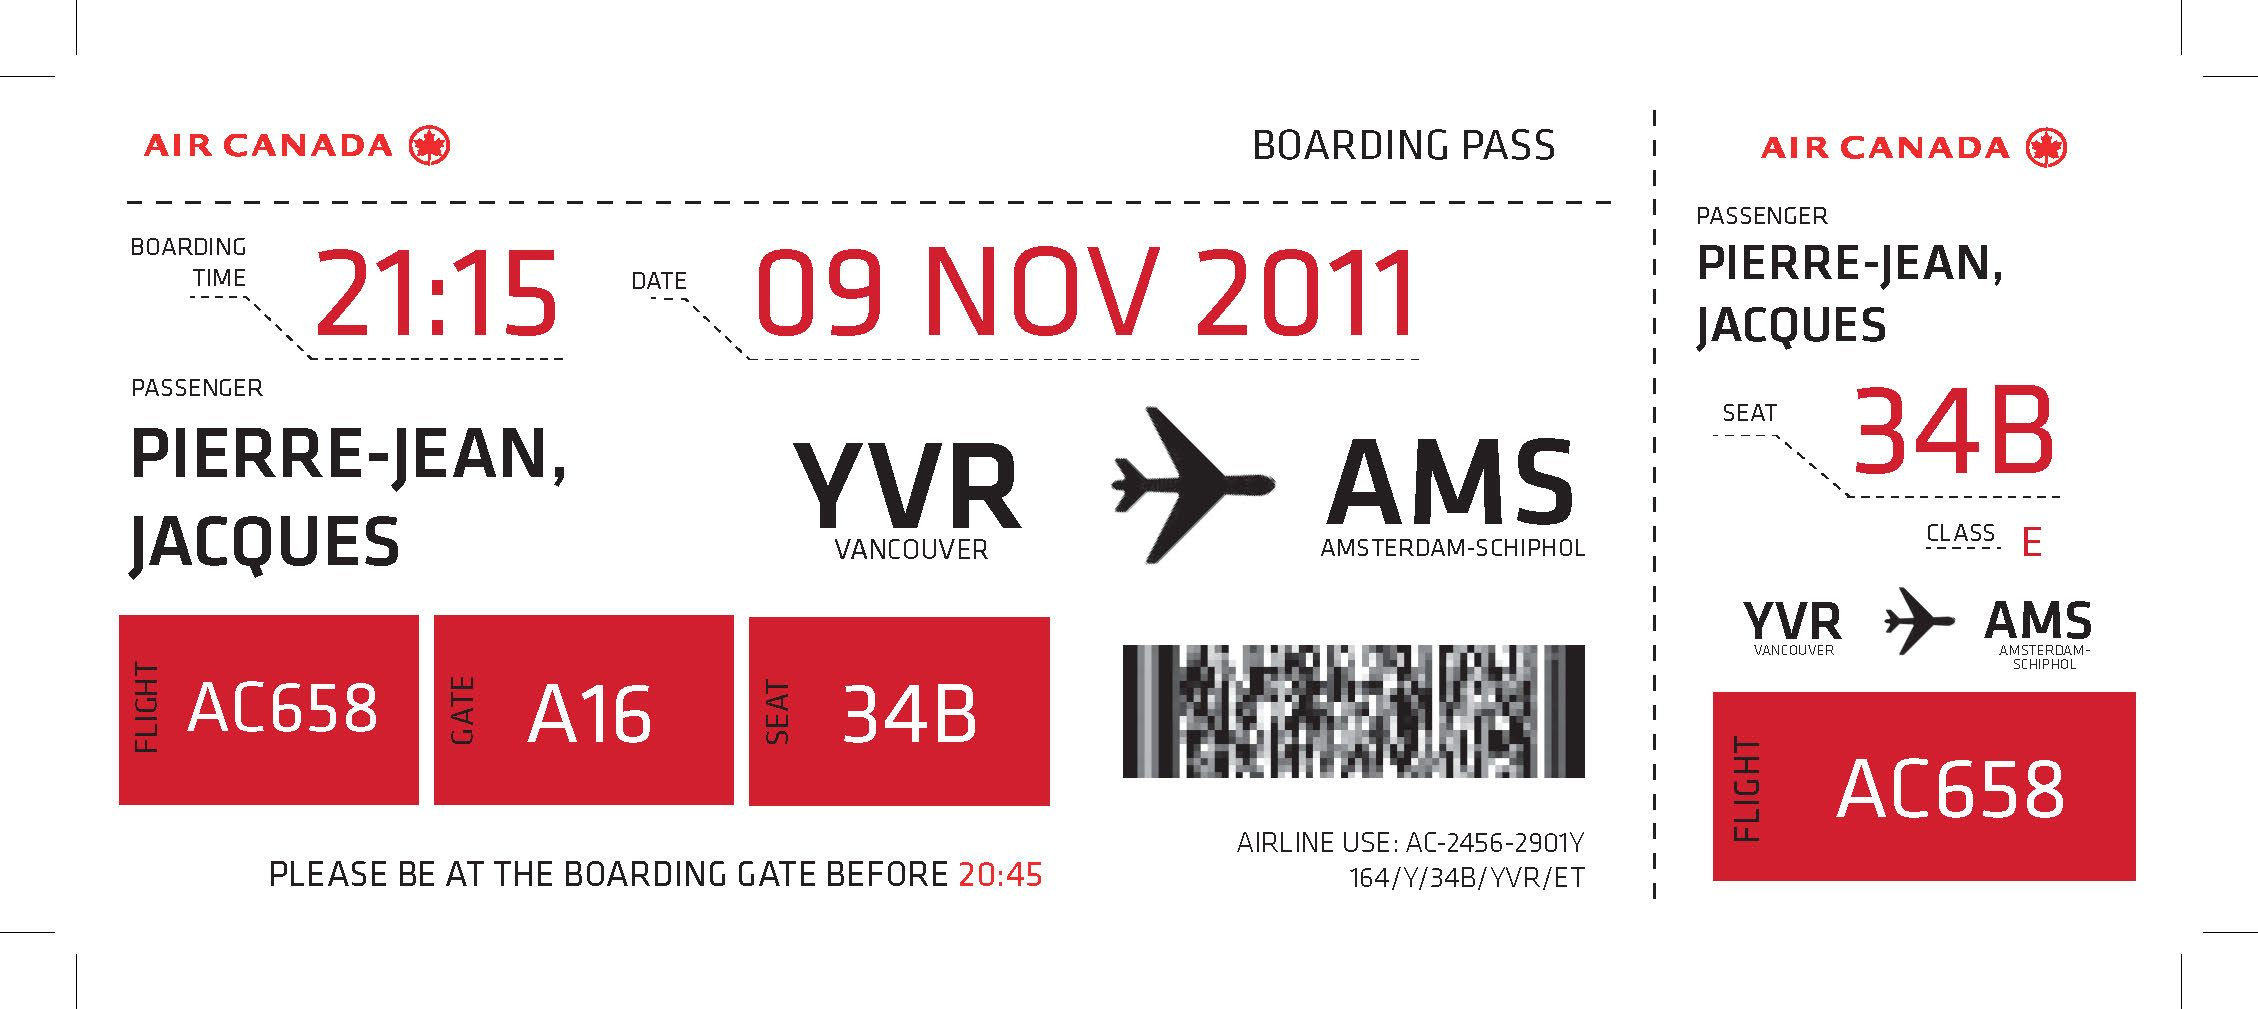 Air Canada Boarding Pass  Just Landed Inspiration